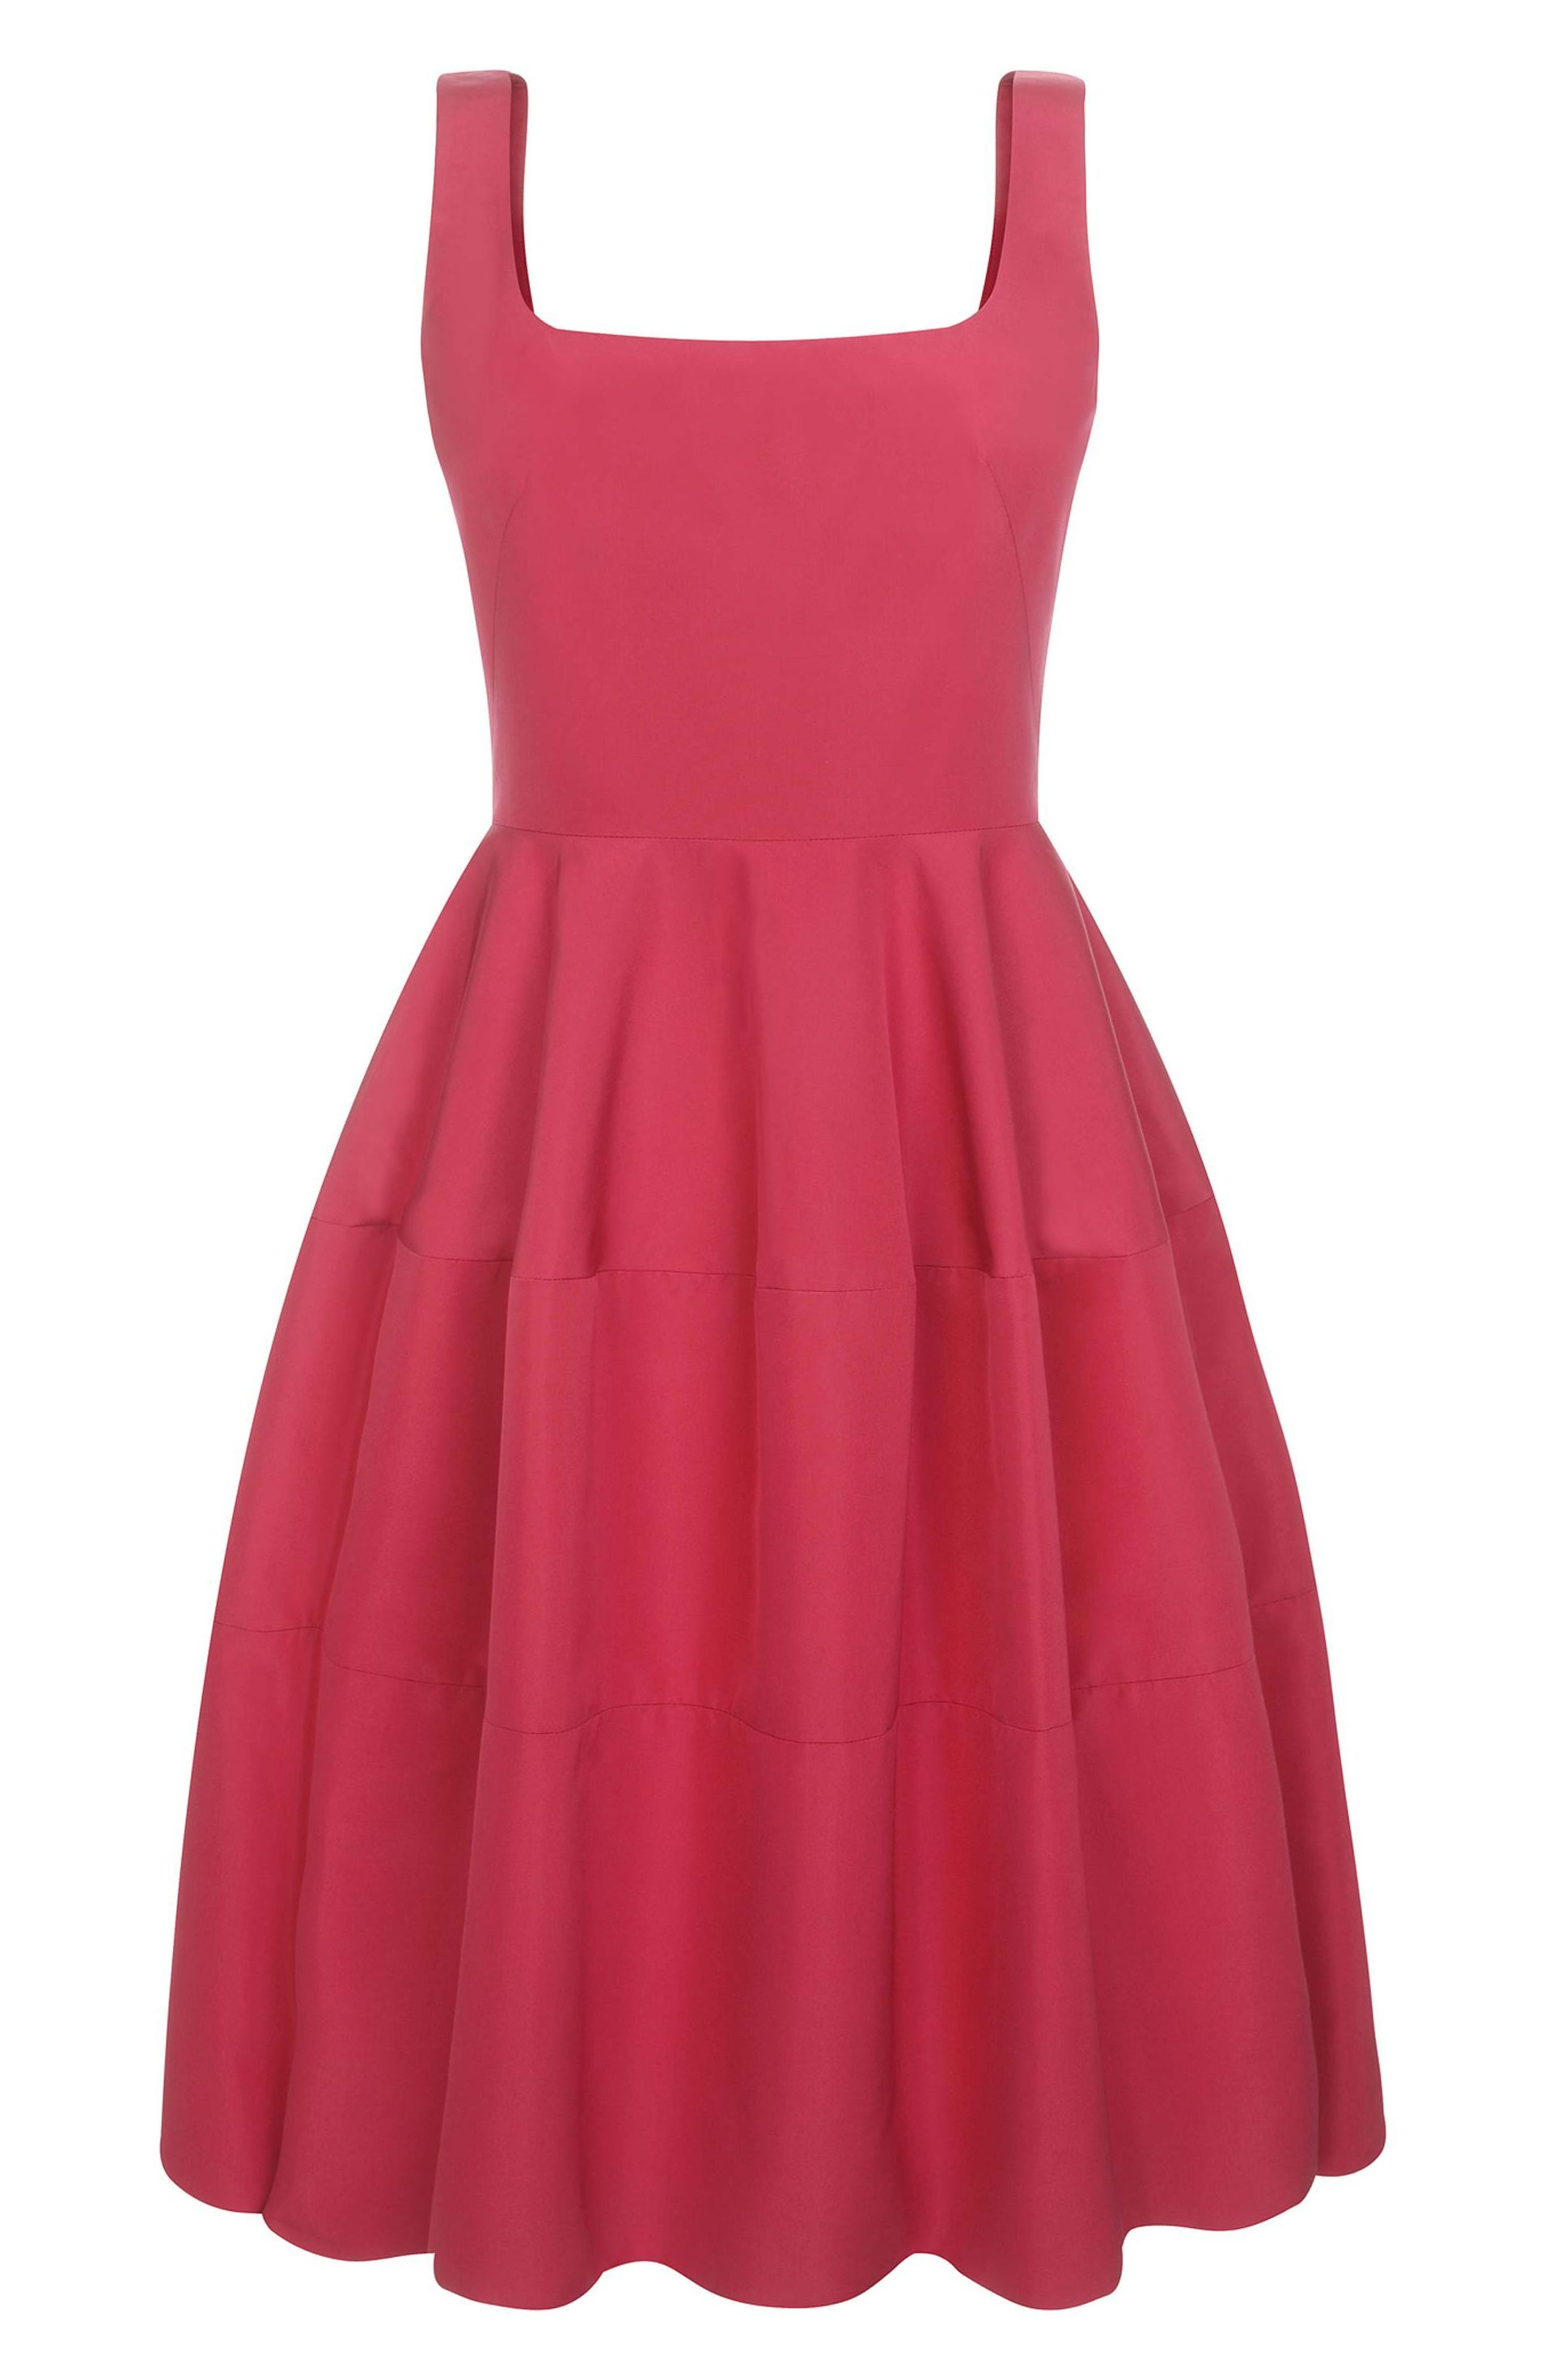 Raspberry silk faille cocktail dress very classic ruby red dress d